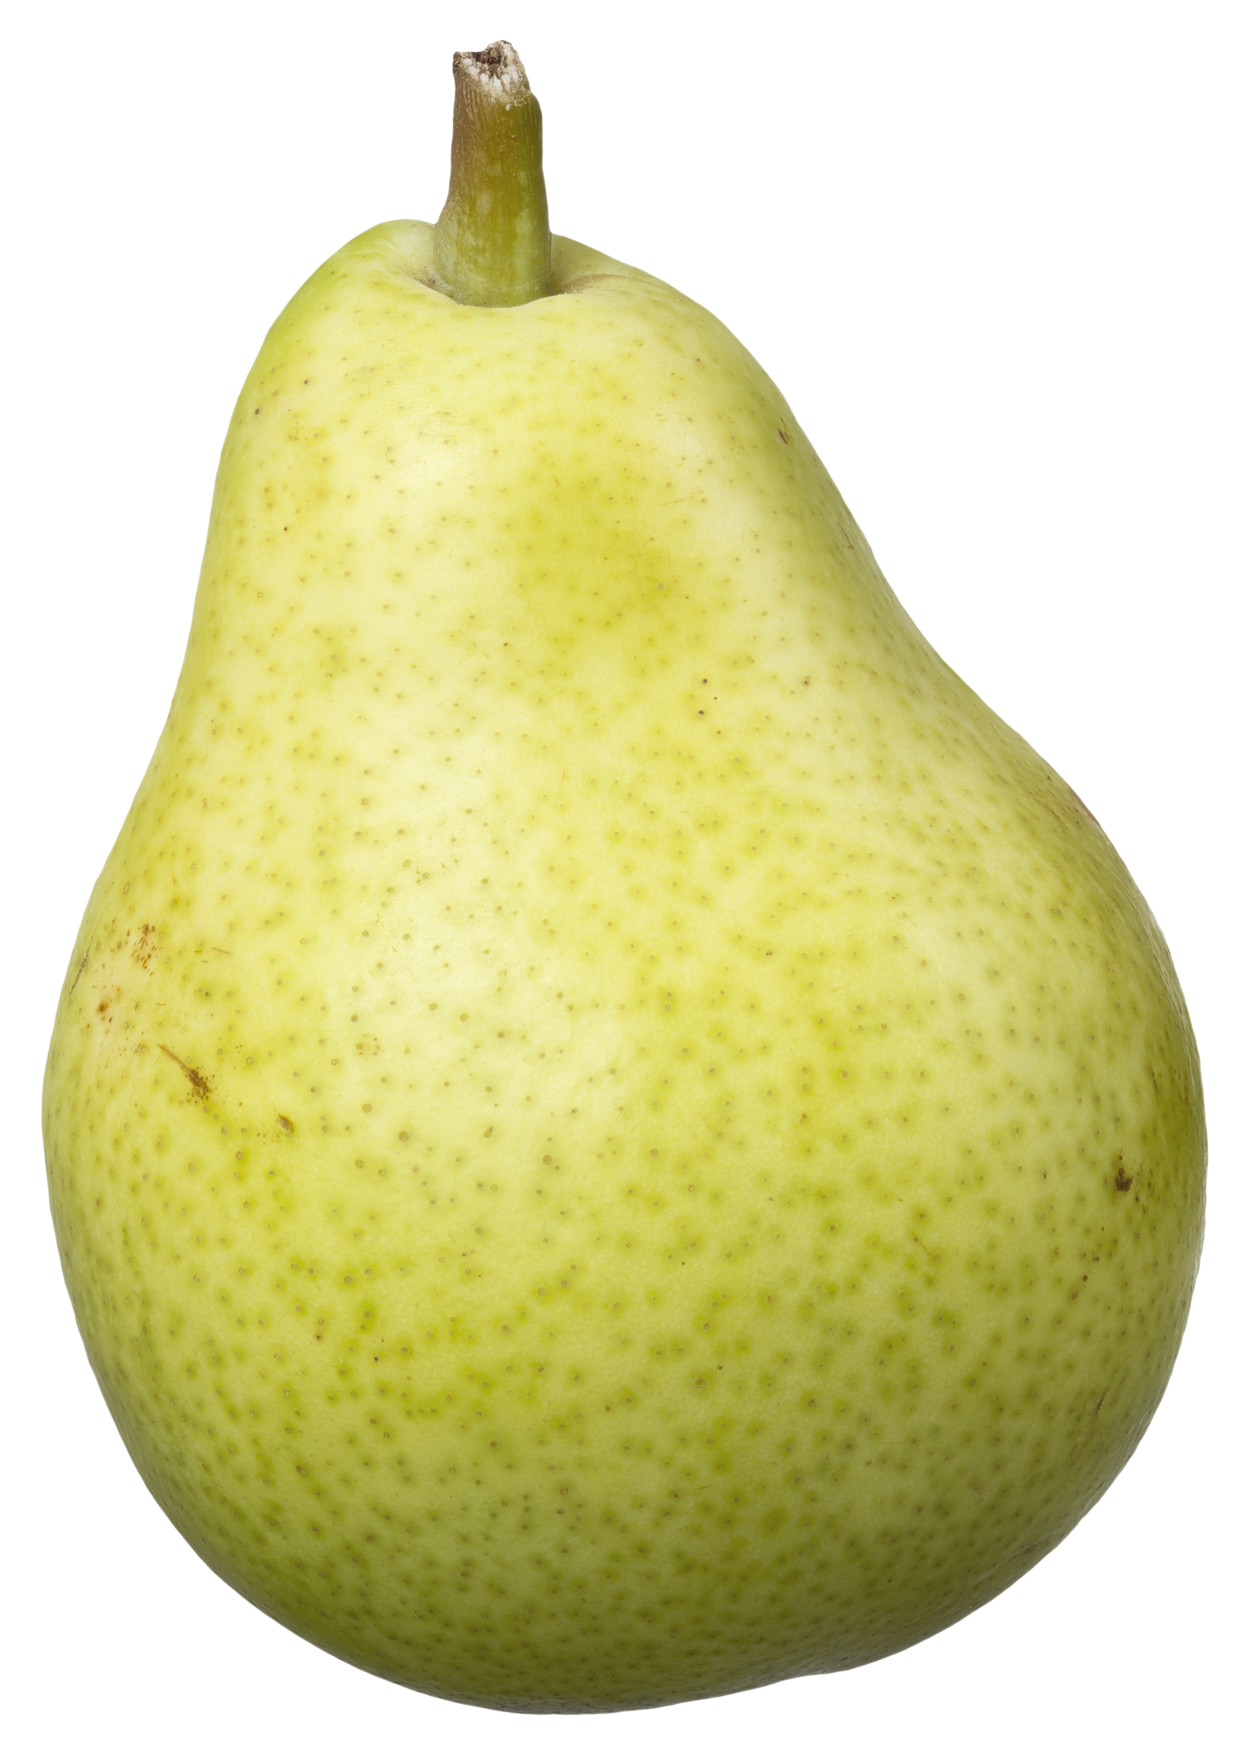 Pear Fruit PNG Transparent Image - Pear PNG - Pear HD PNG